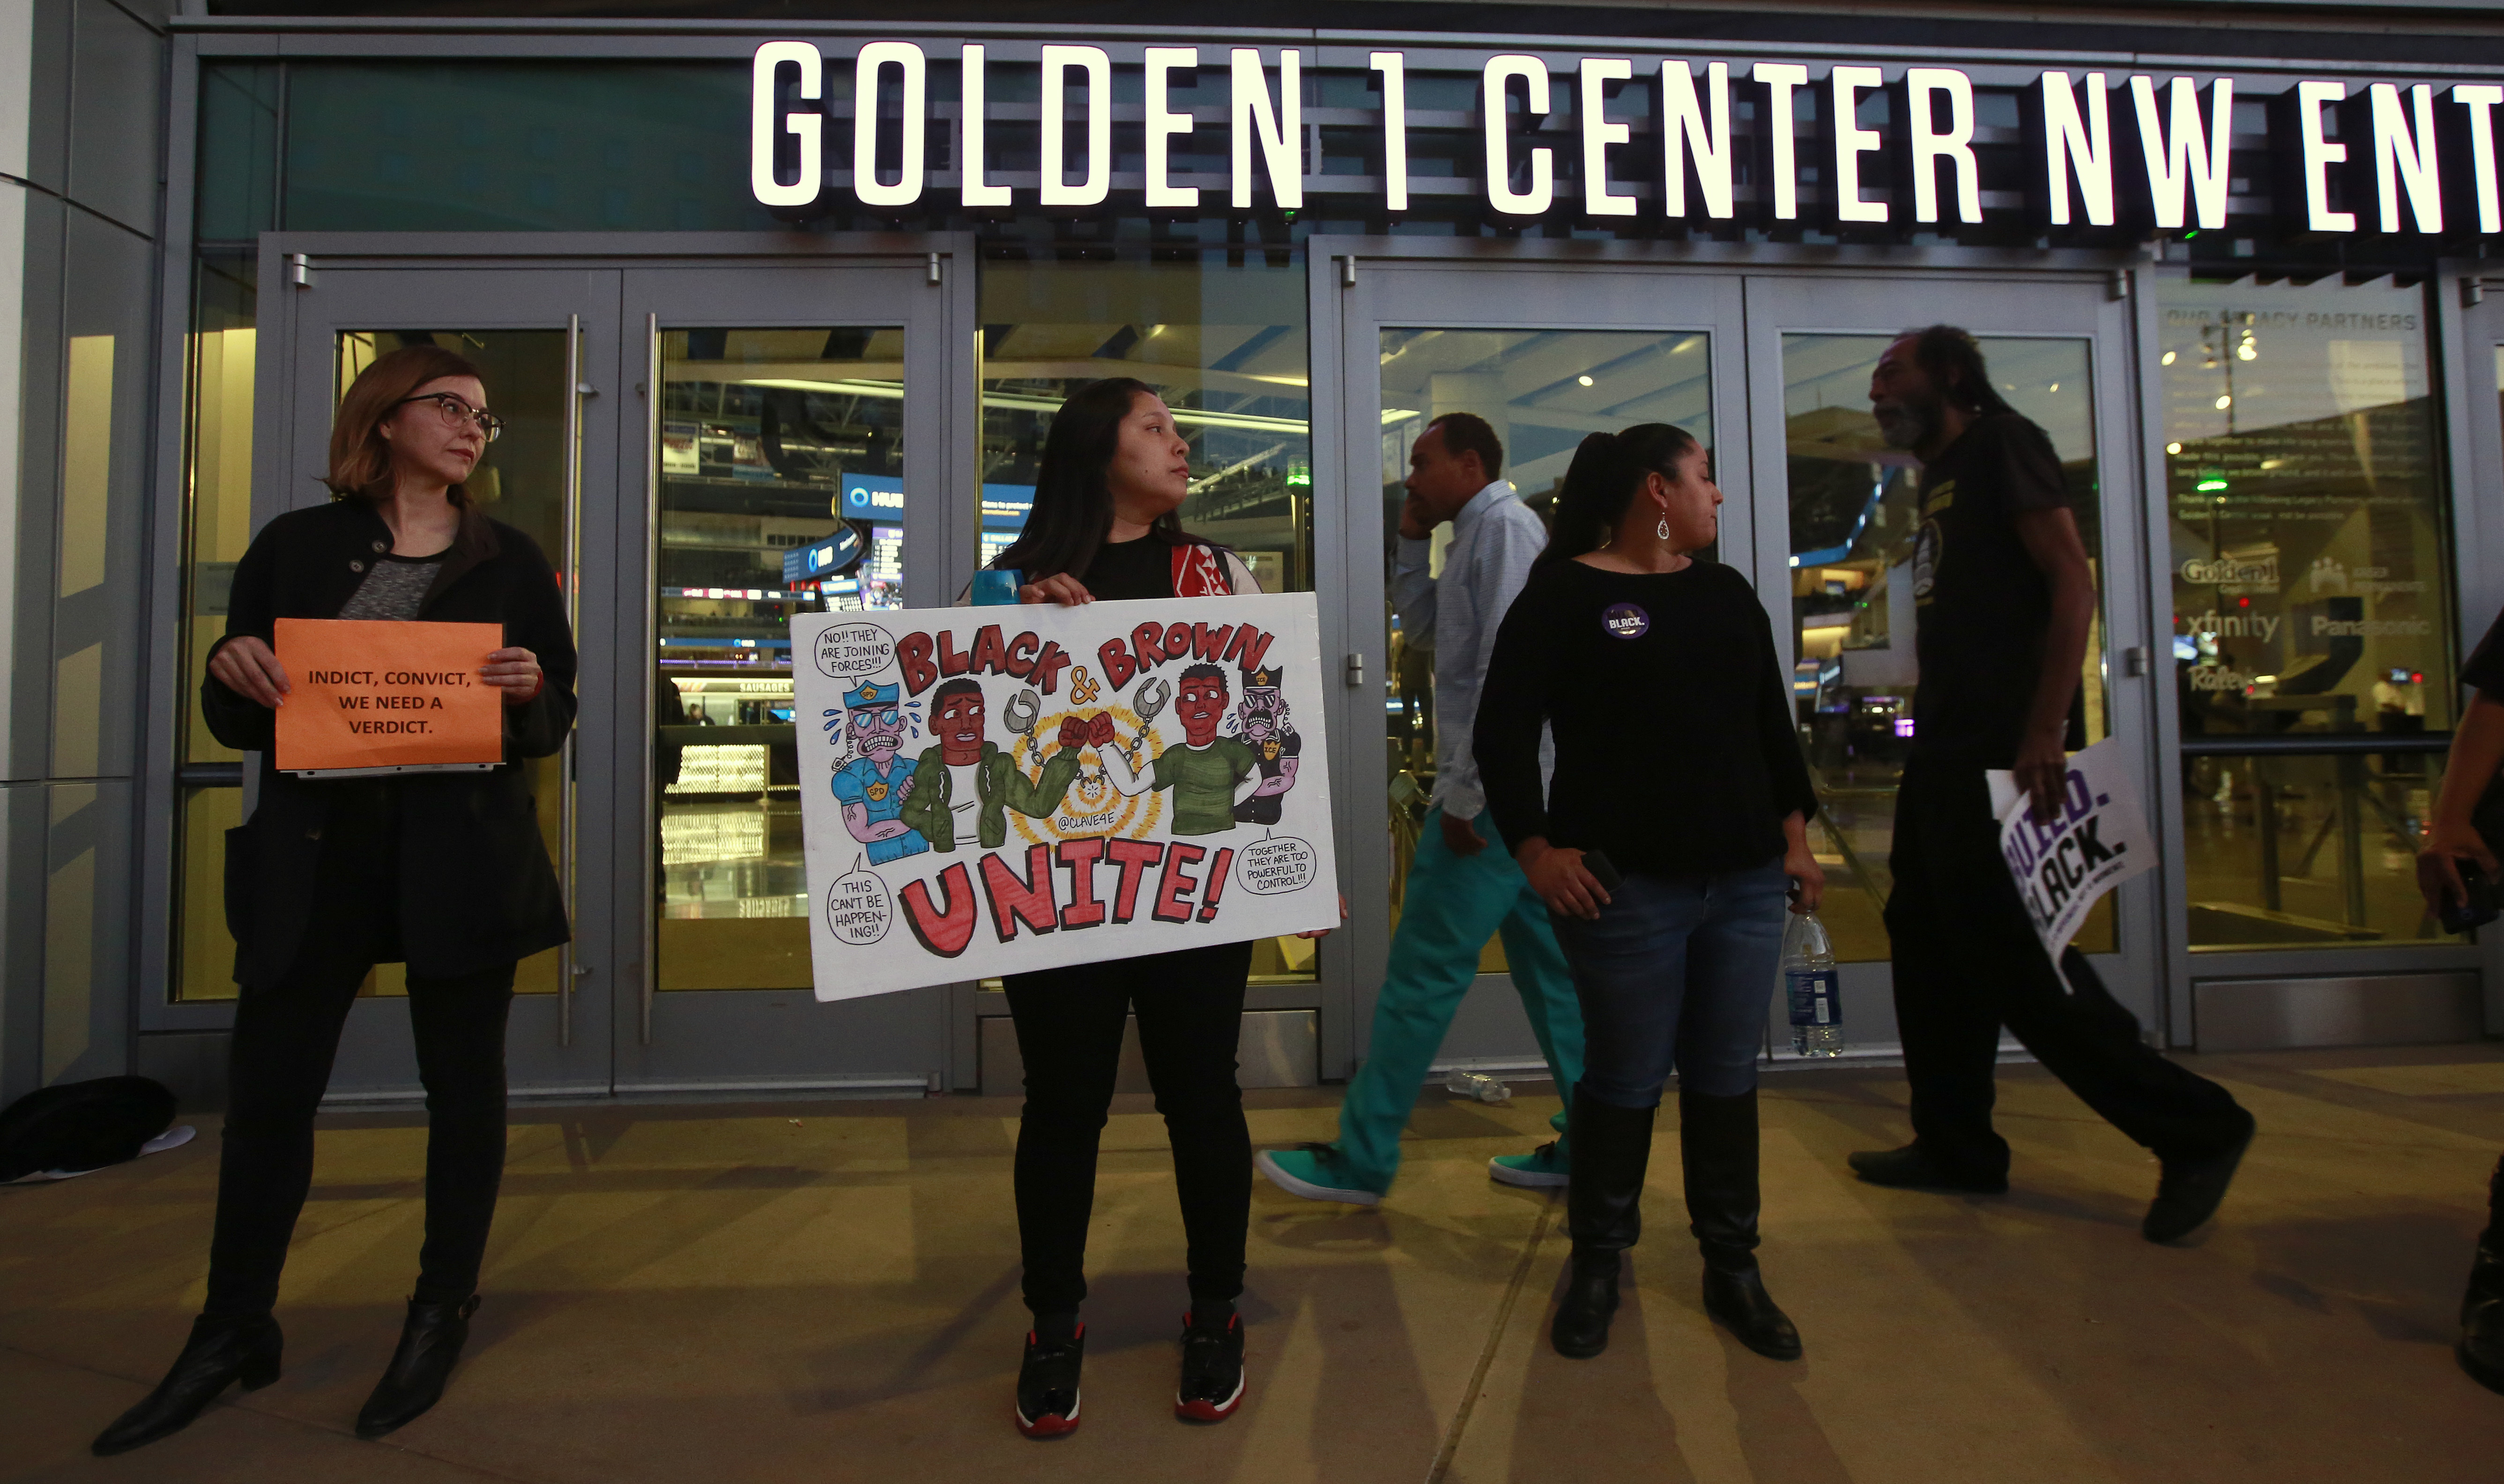 Demonstrators protesting the shooting death of Stephon Clark by Sacramento Police officers on March 18, block the entrance to the Golden 1 Center, preventing ticket holders from entering to watch the Dallas Mavericks play the Sacramento Kings in an N...